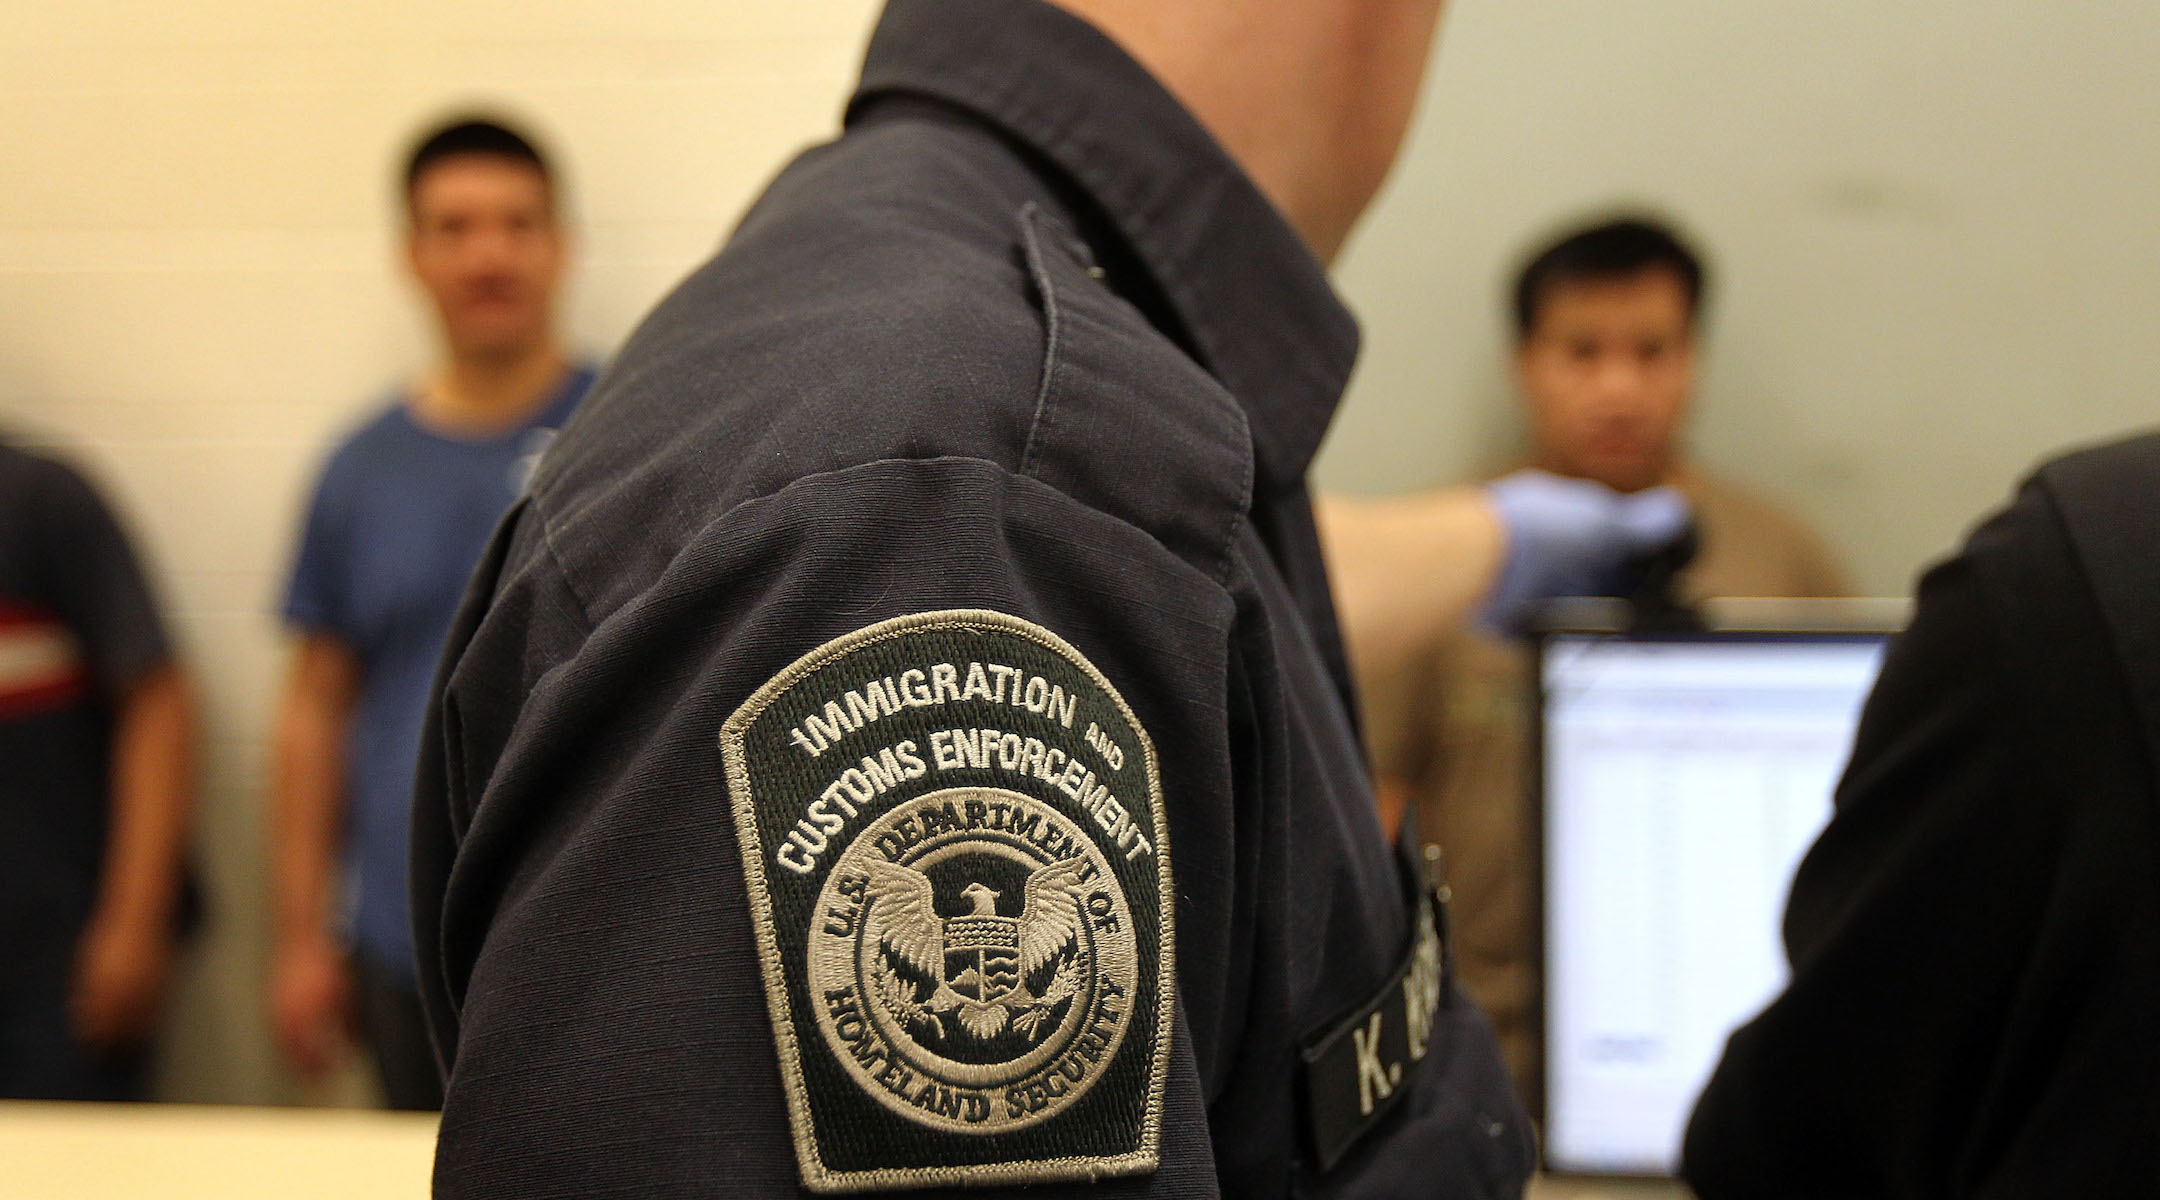 Undocumented Mexican immigrants are photographed while being in-processed at the Immigration and Customs Enforcement (ICE), center in Phoenix, Arizona, April 28, 2010. (John Moore/Getty Images)